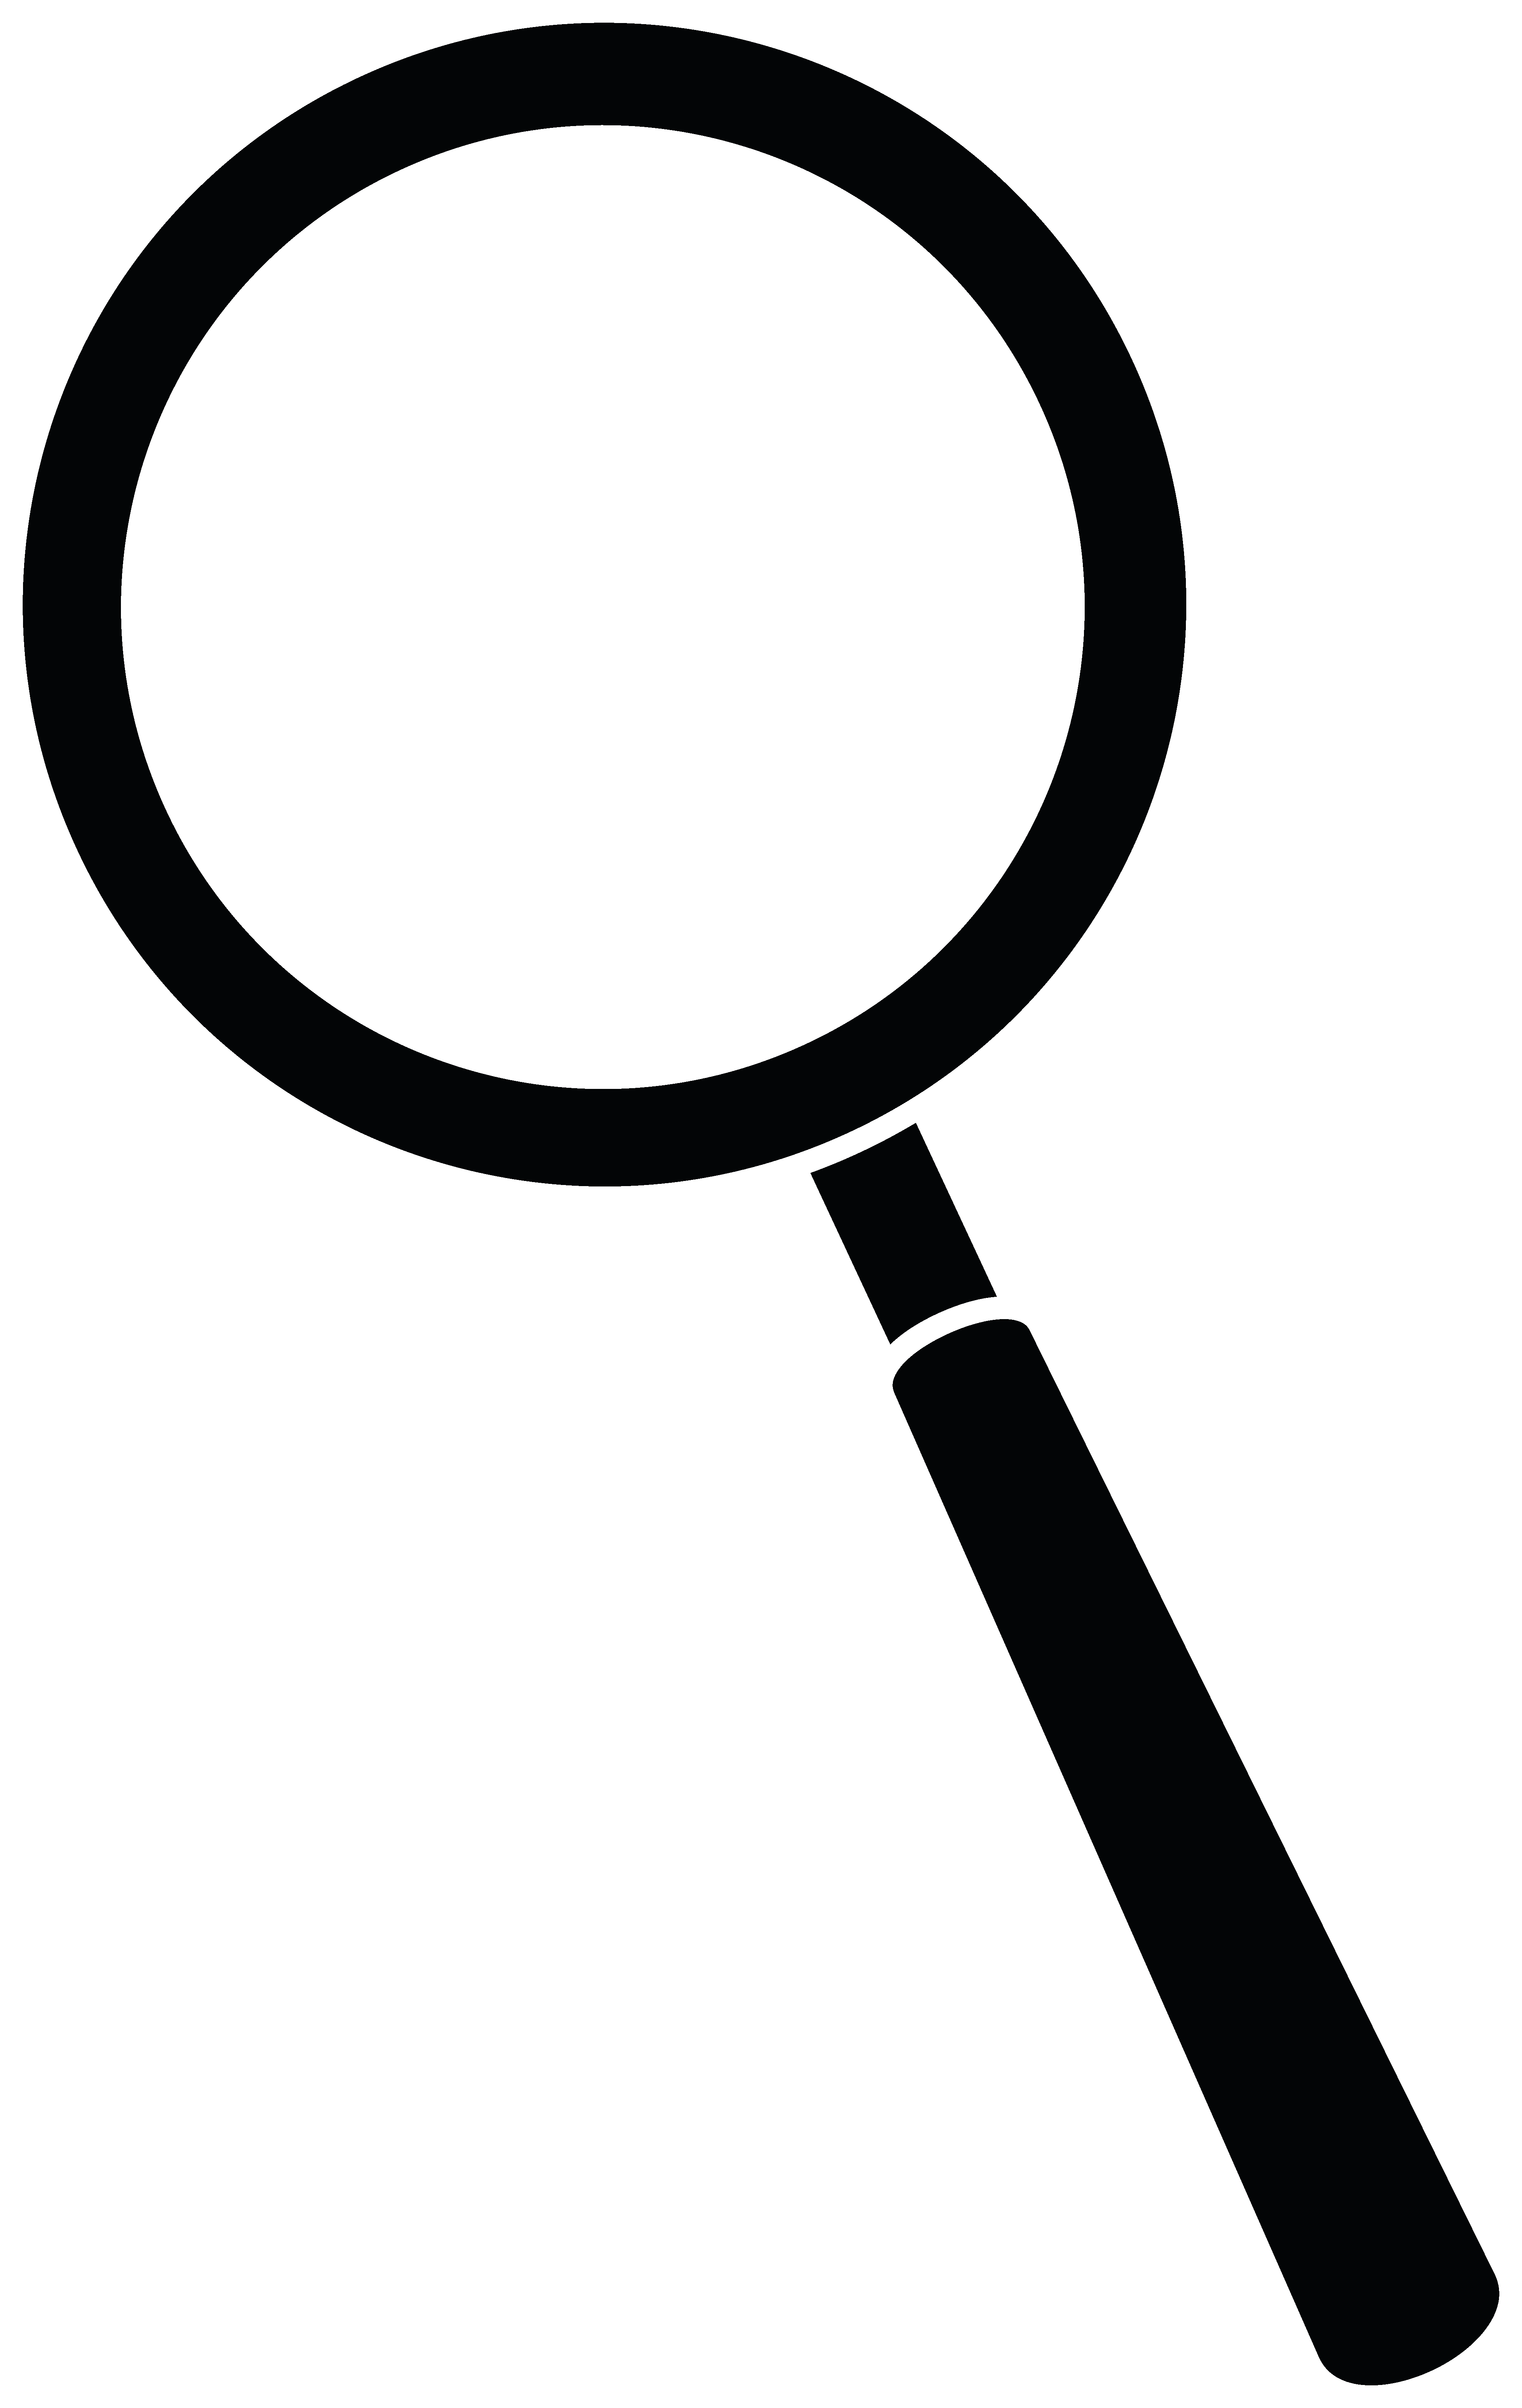 Free Magnifying Lens Cliparts, Download Free Clip Art, Free.